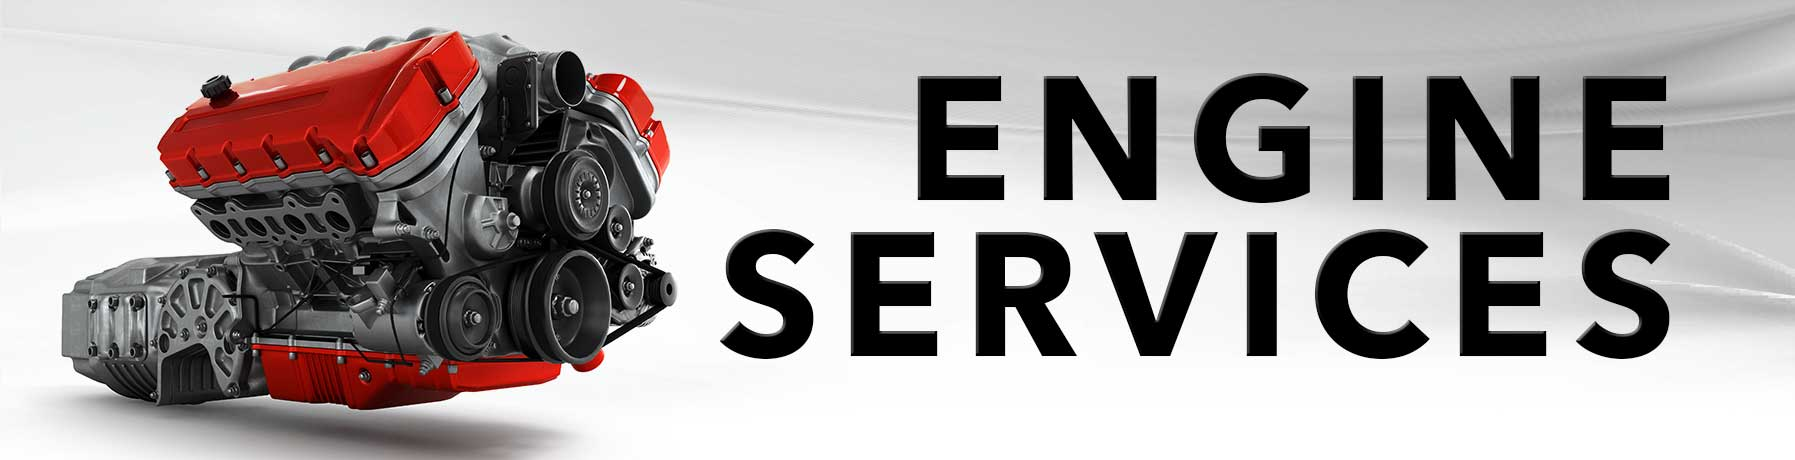 Engine Service banner image with picture of an engine block